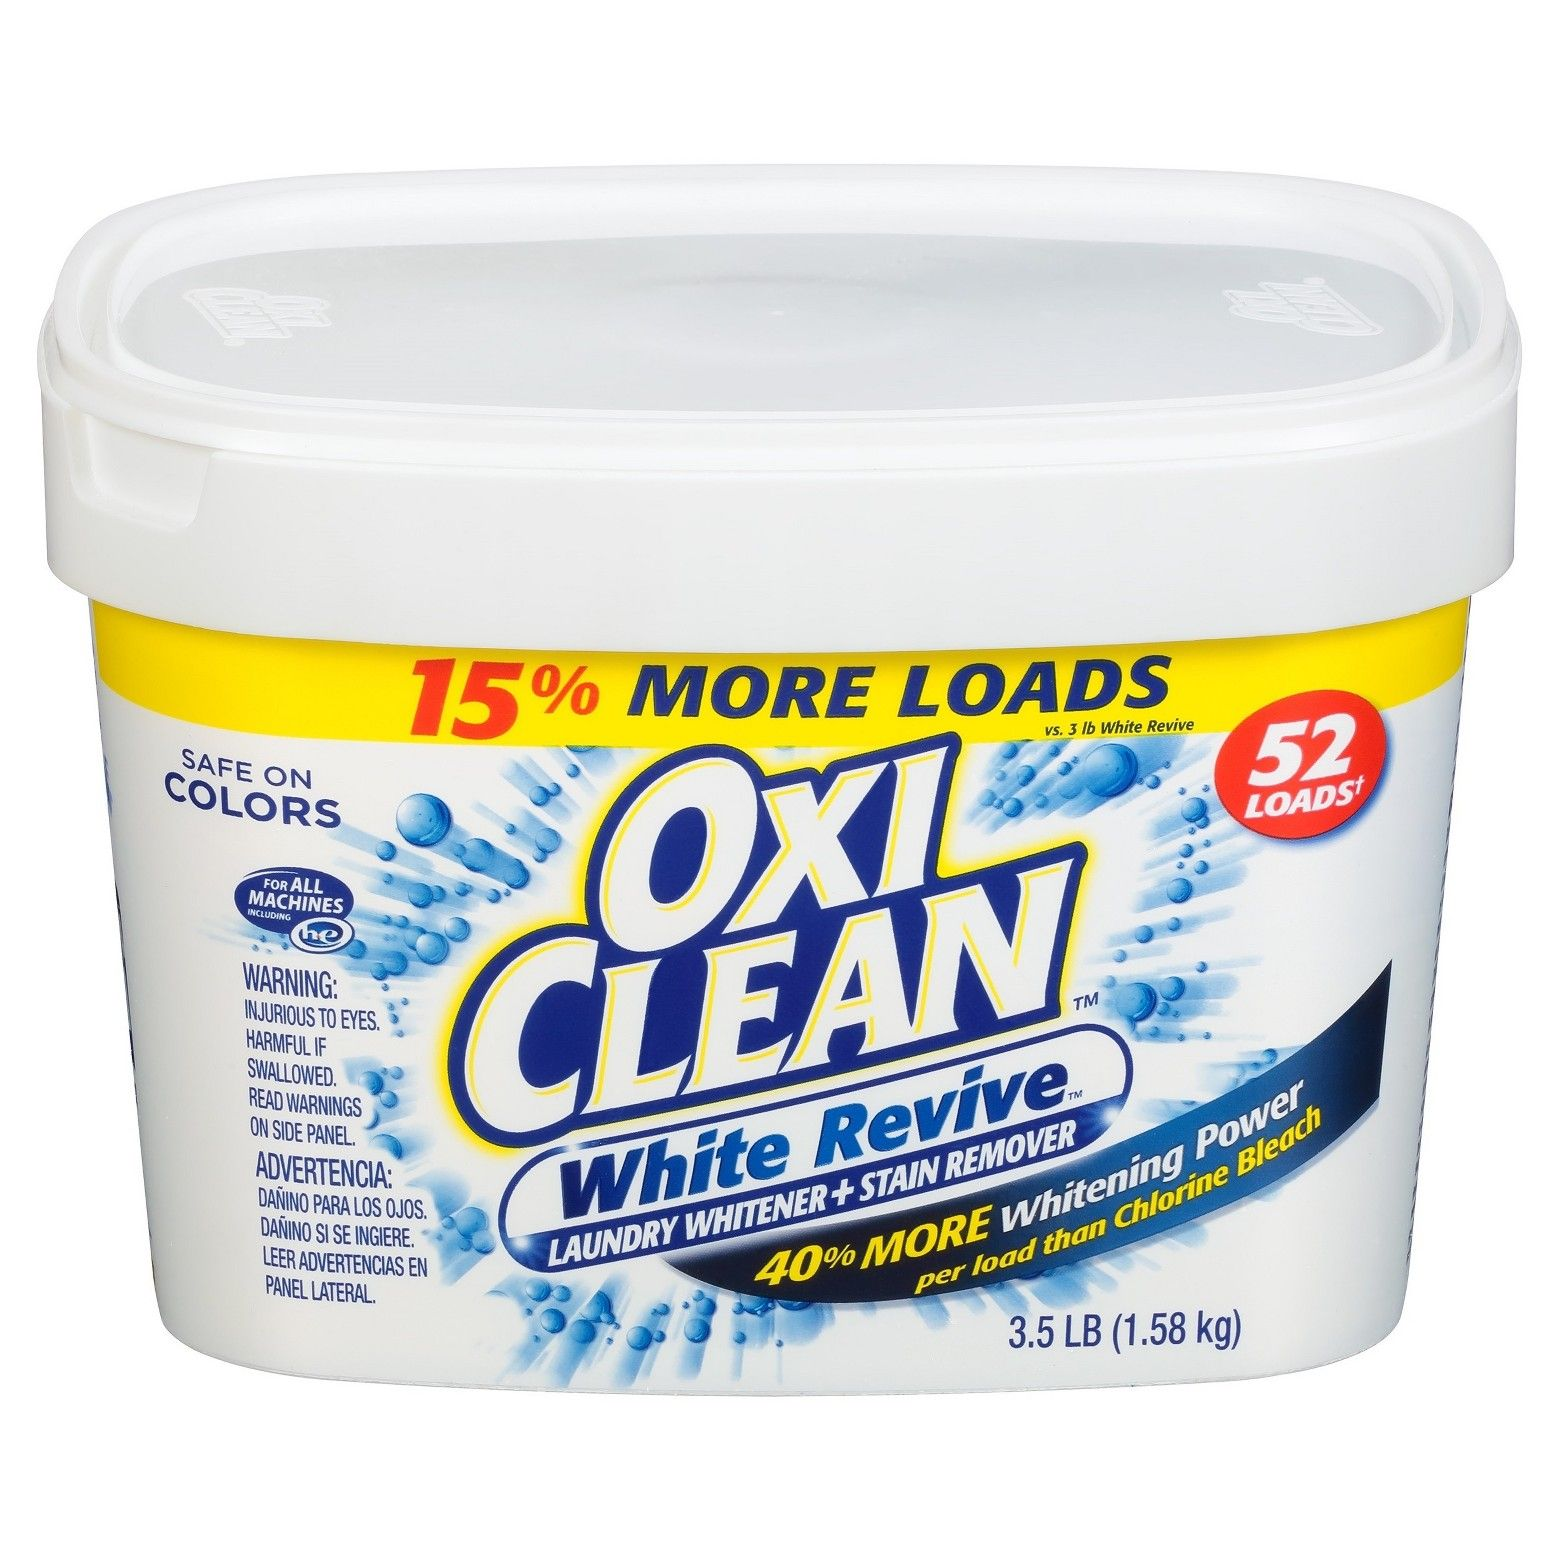 Oxiclean White Revive Laundry Whitener Stain Remover Powder